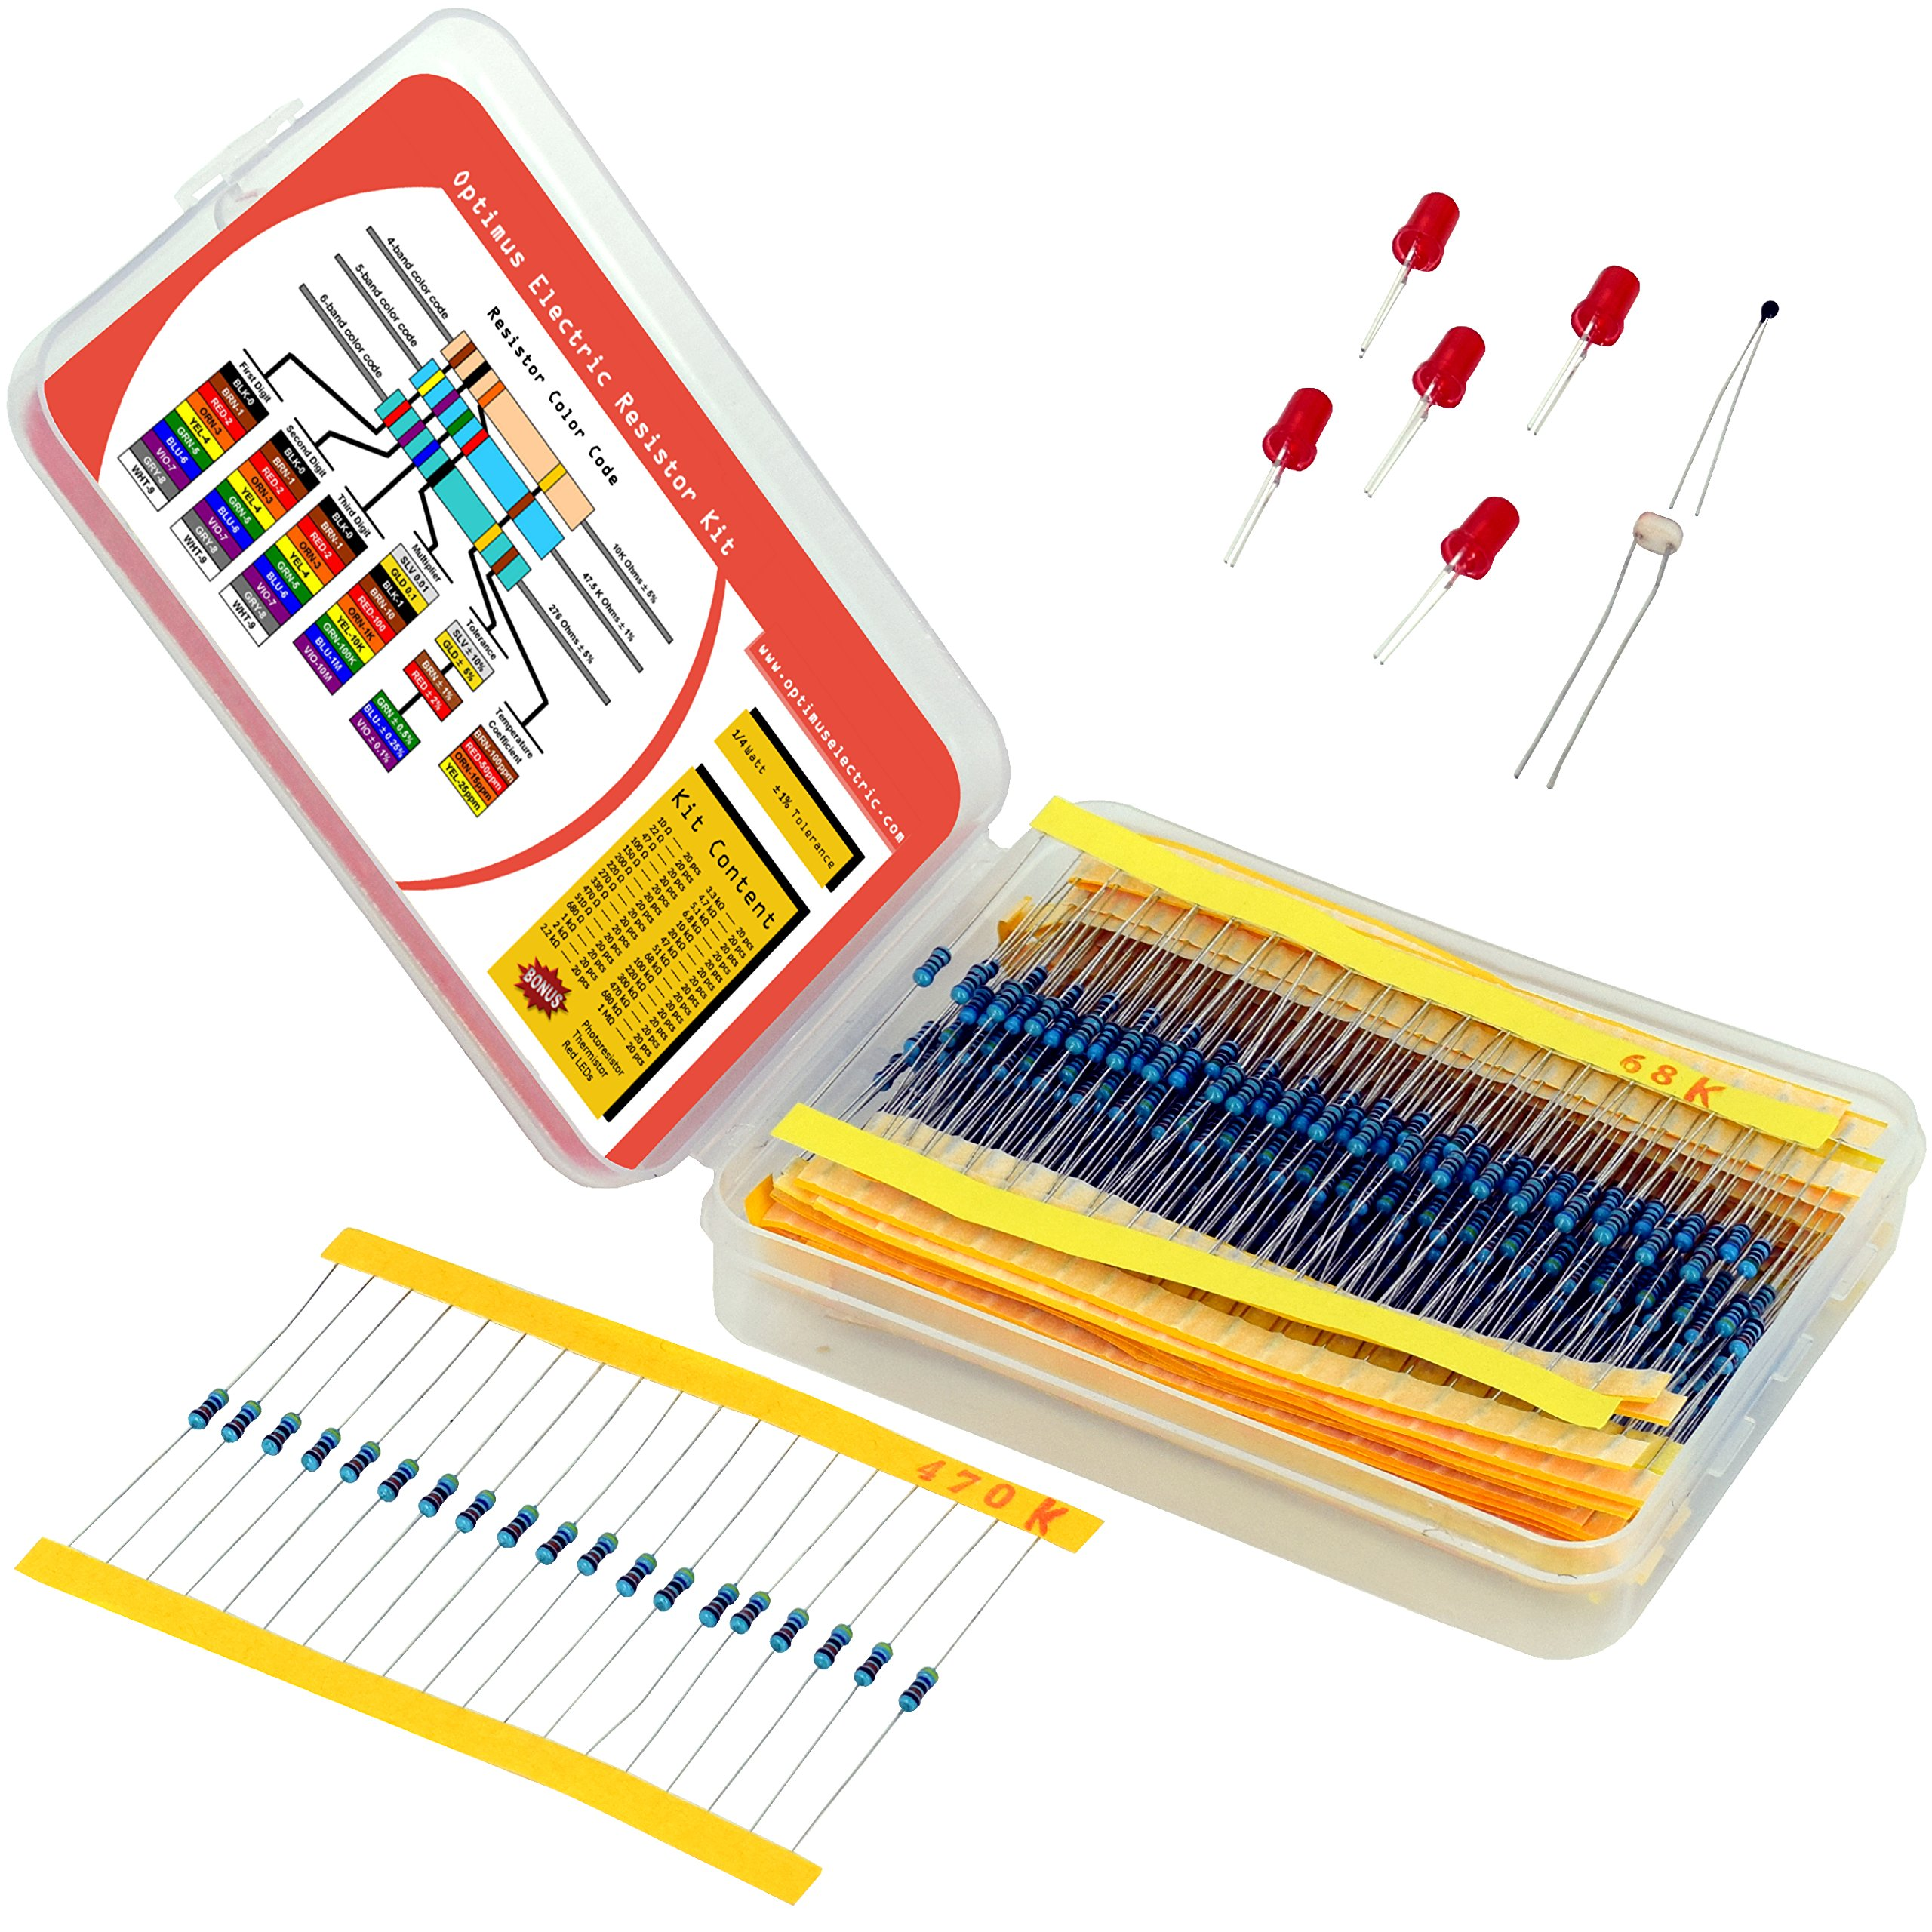 Resistor Assortment Kit - Set of 600 Assorted Resistors from 10 Ω to 1 MΩ in a Box - Metal Film Resistors Variety Pack with 30 Values Plus Thermistor, Photoresistor and 5 LEDs from Optimus Electric